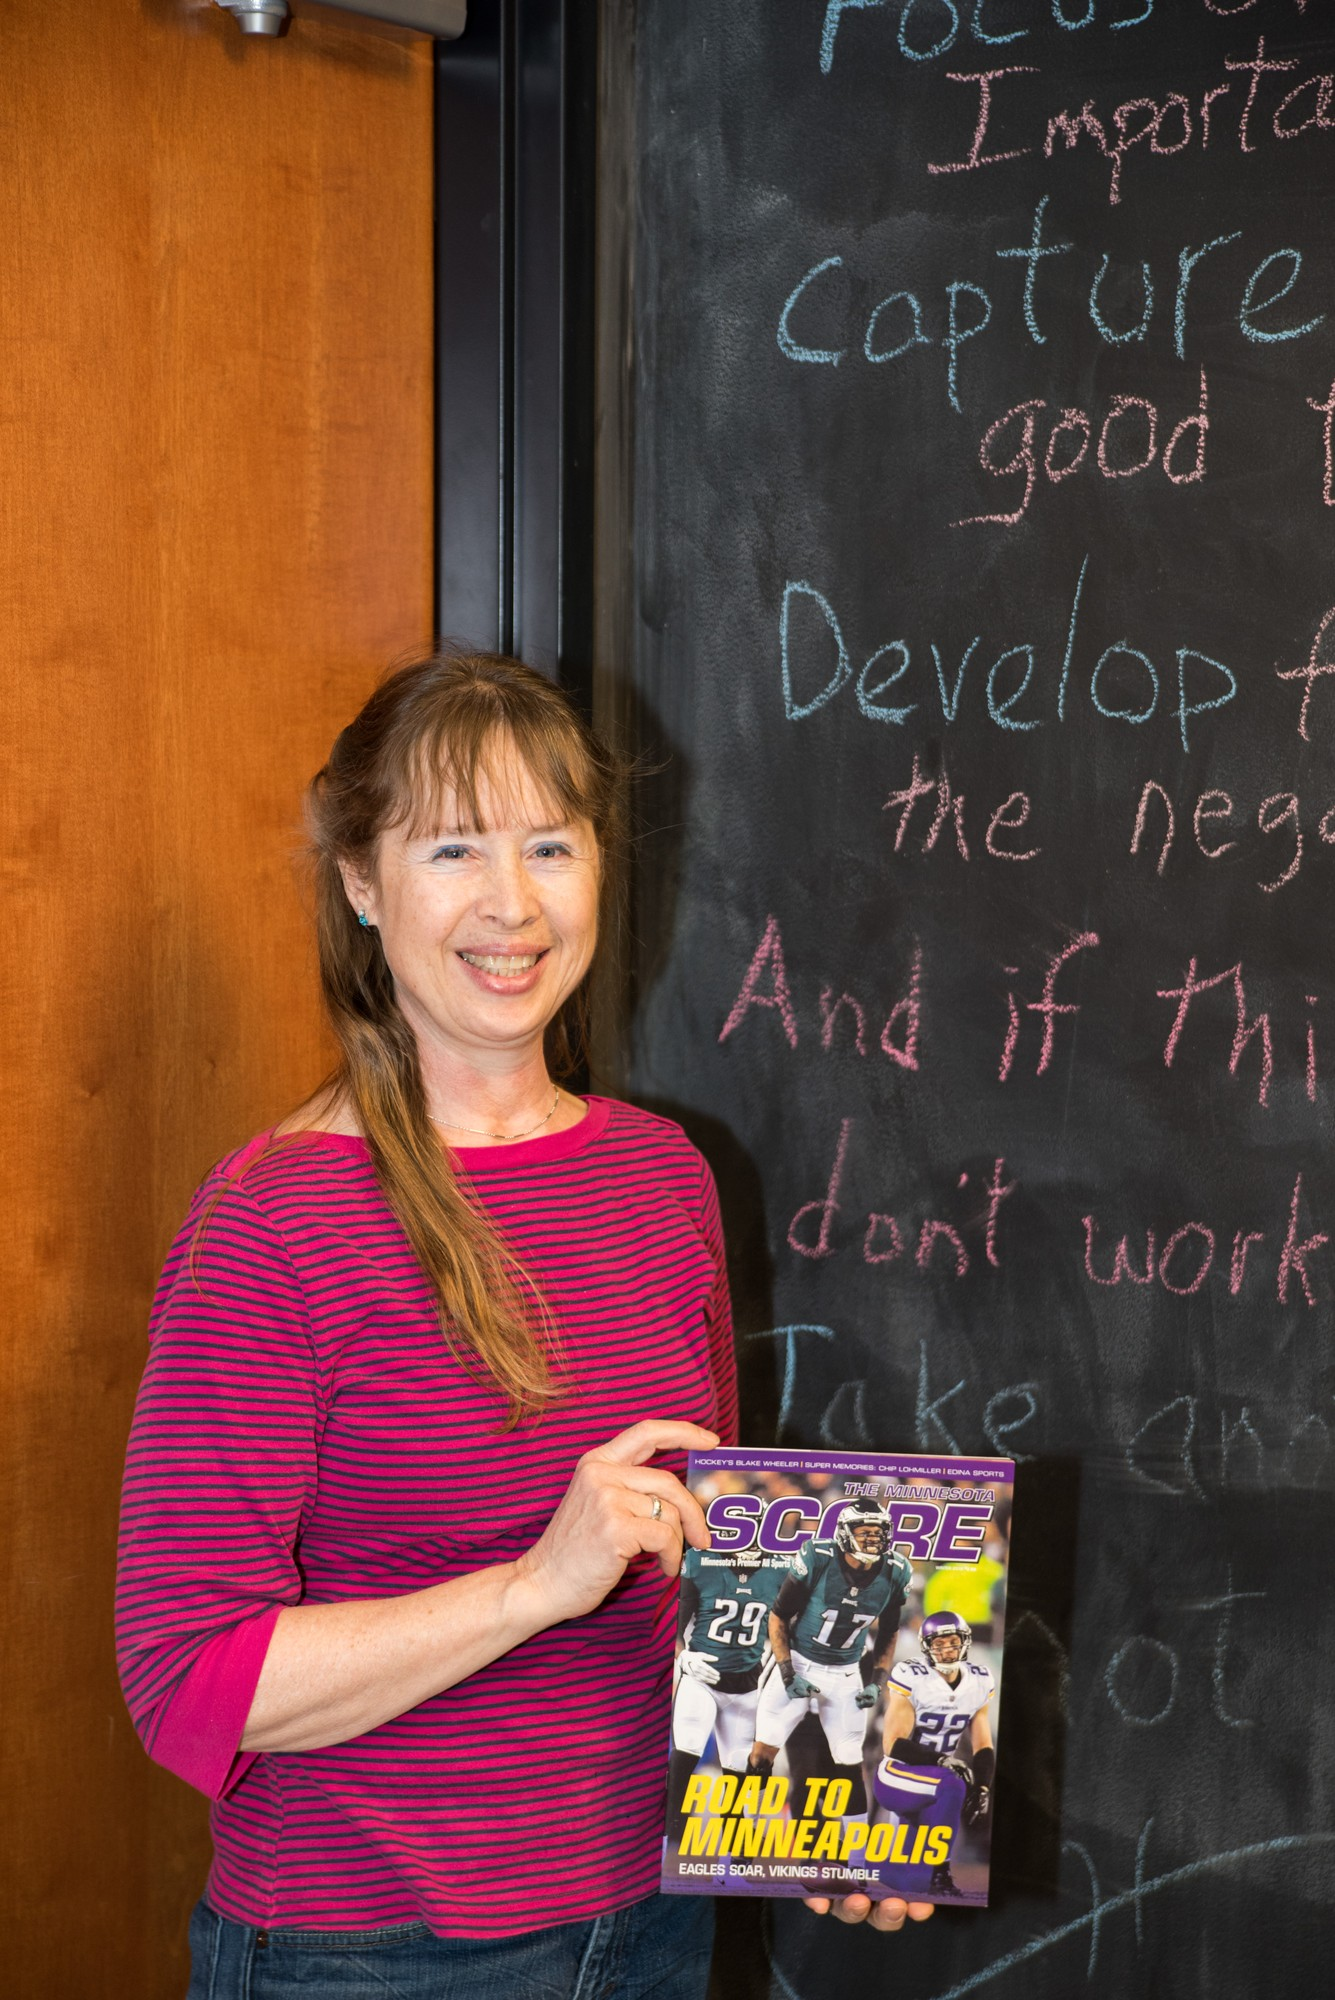 Minneapolis, MN - 2/12/2018 - Marilyn Indahl displays a copy of Minnesota Score that her pictures of the Stefon Diggs and the Minnesota Miricle were published in.  (Mark Kuhn/MCTC)